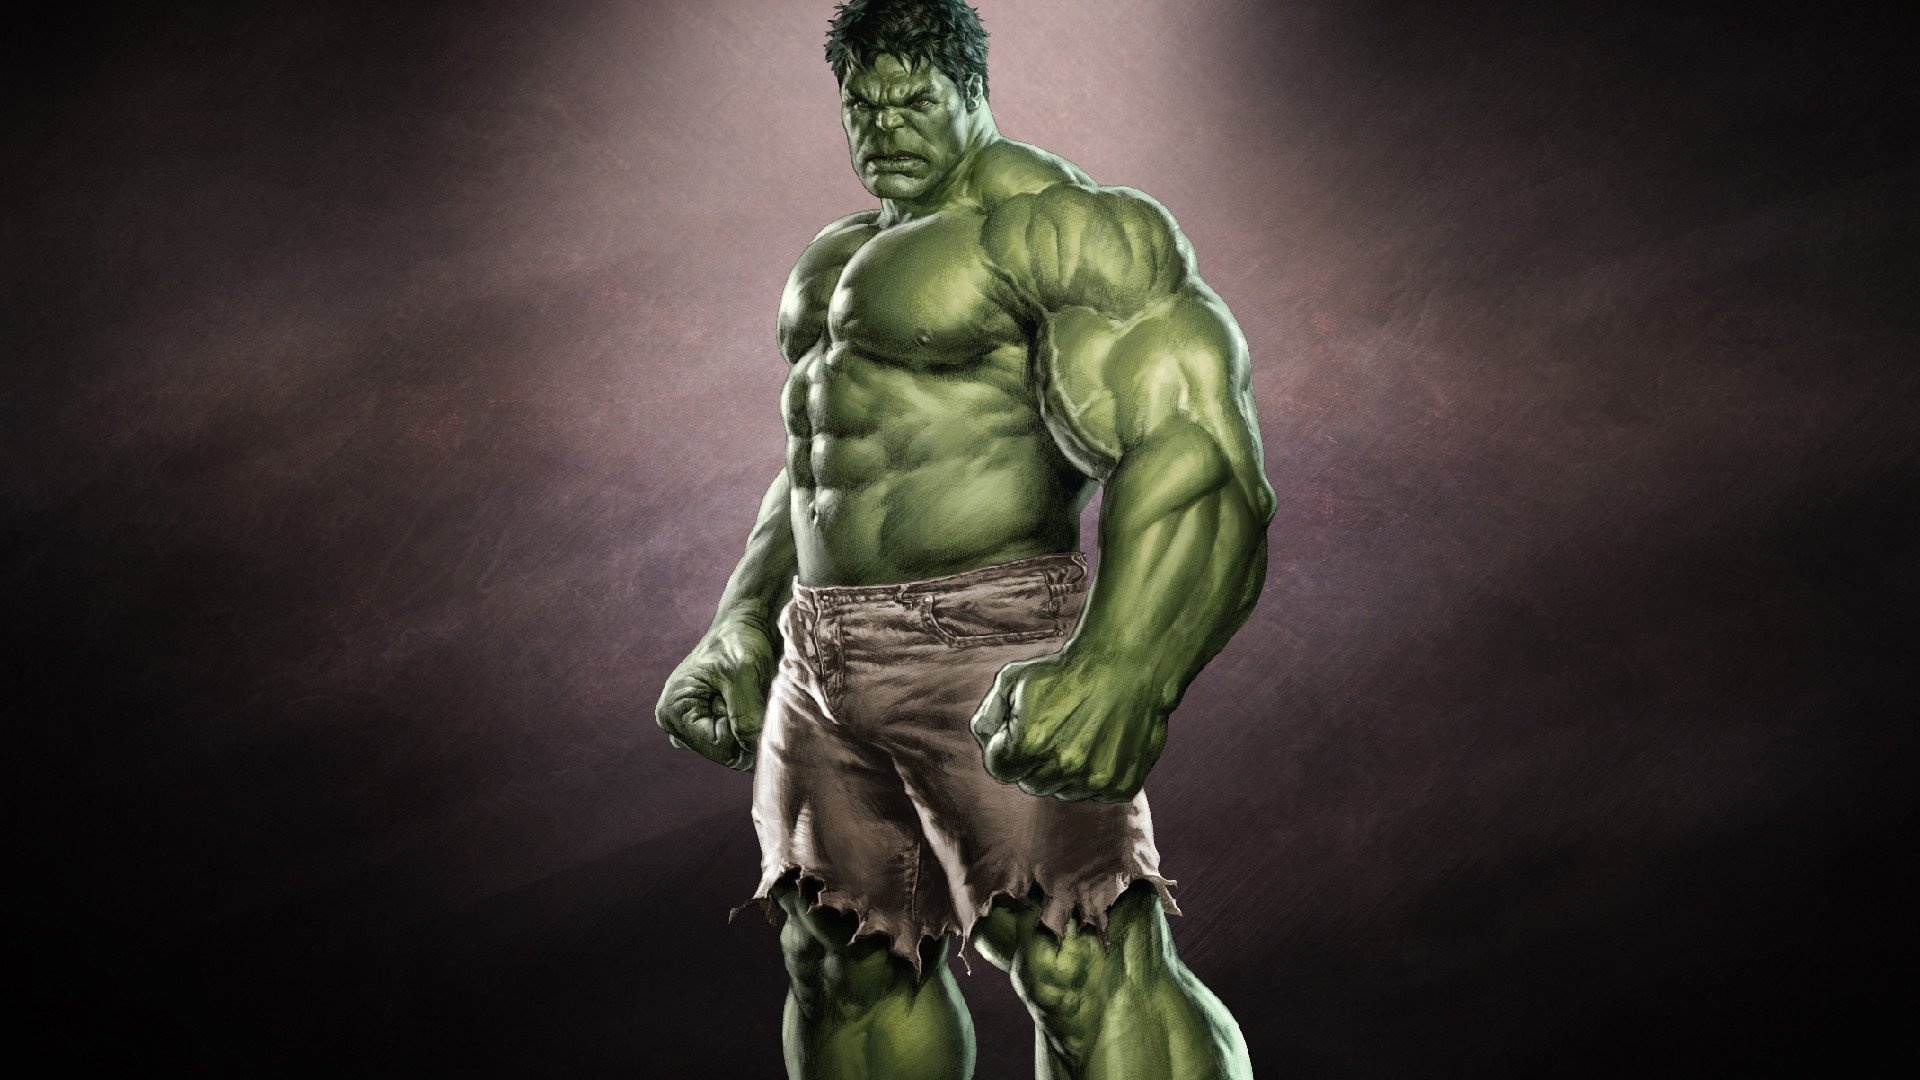 Hulk windows background